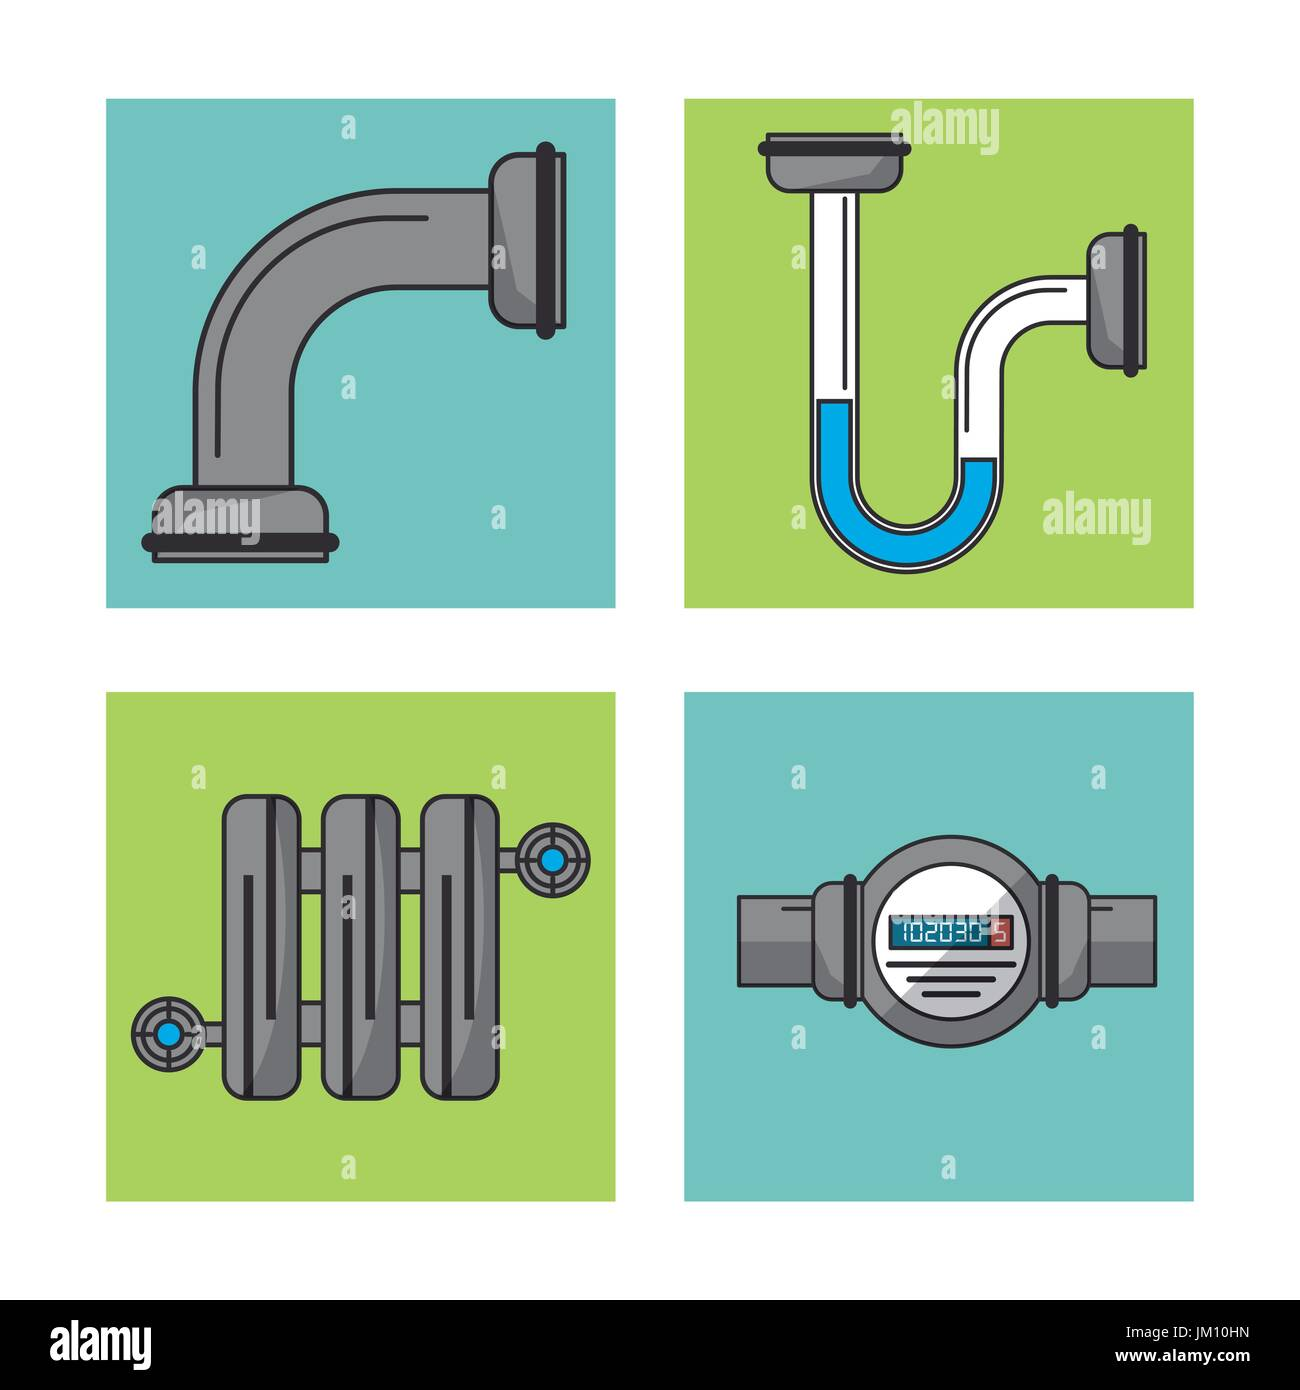 white background with frames of water pipeline and water meter - Stock Image